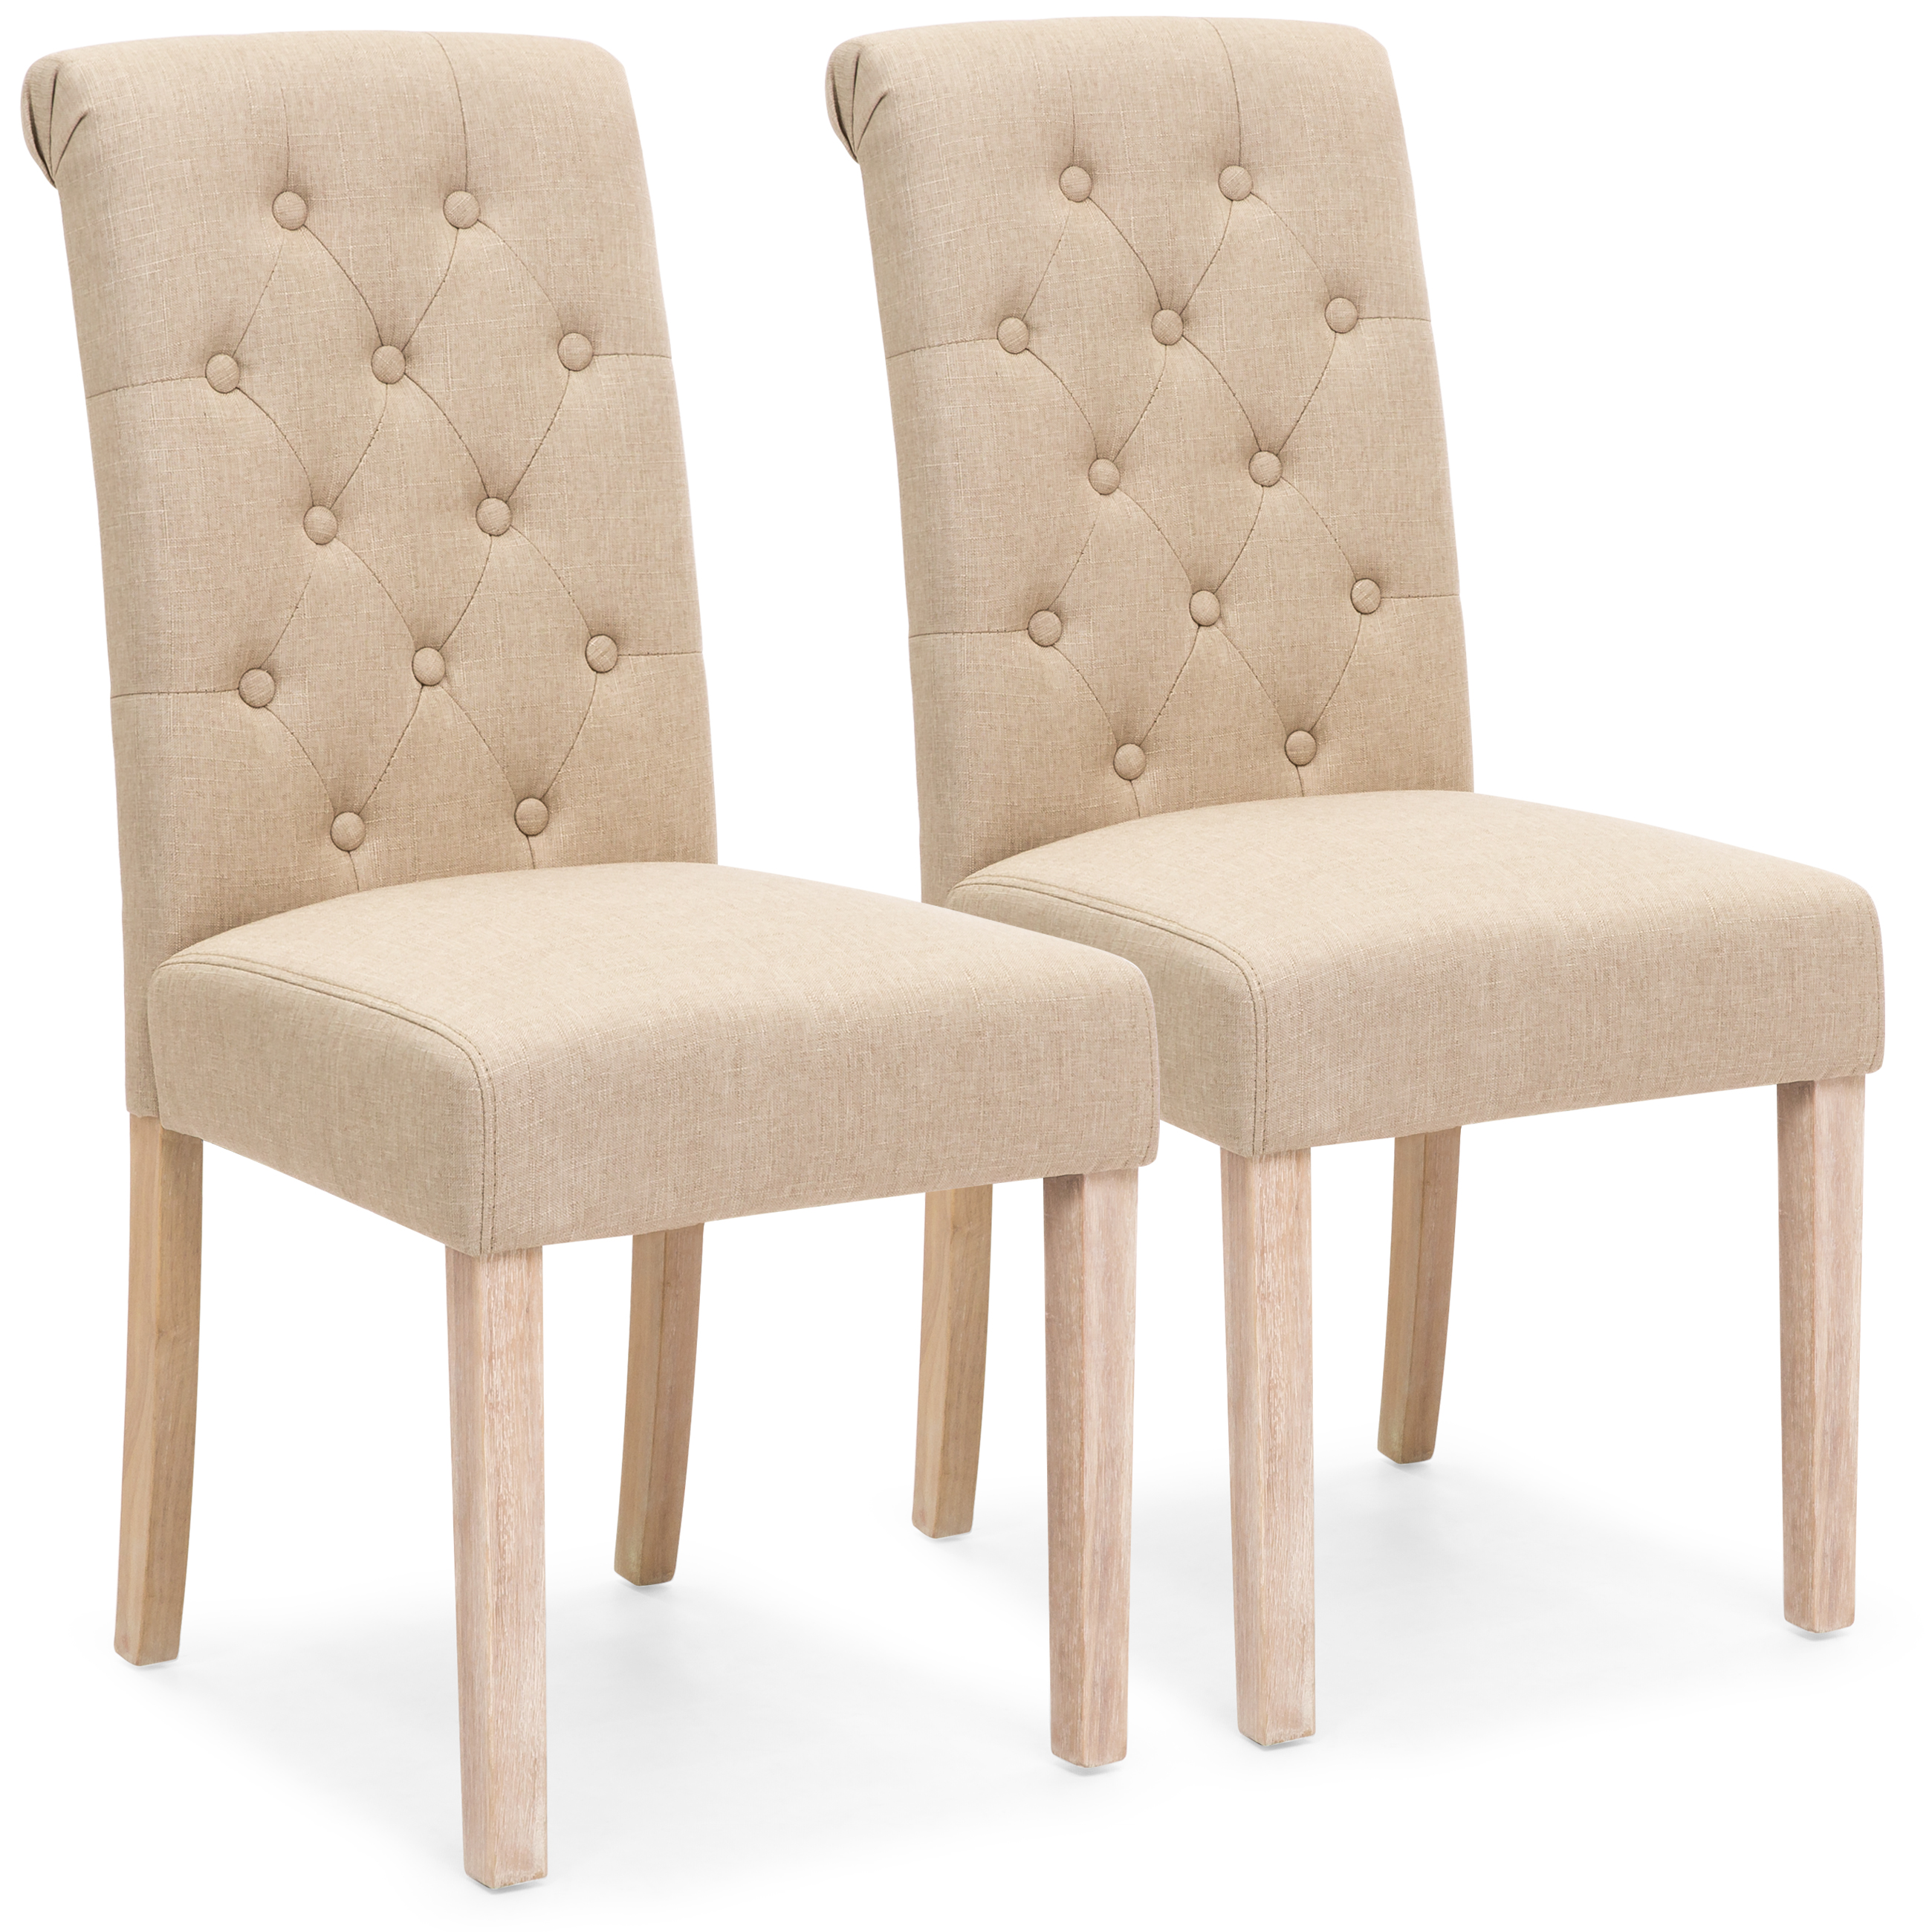 Best Choice Products Set of 2 Tufted High Back Parsons Dining Chairs (Tan)